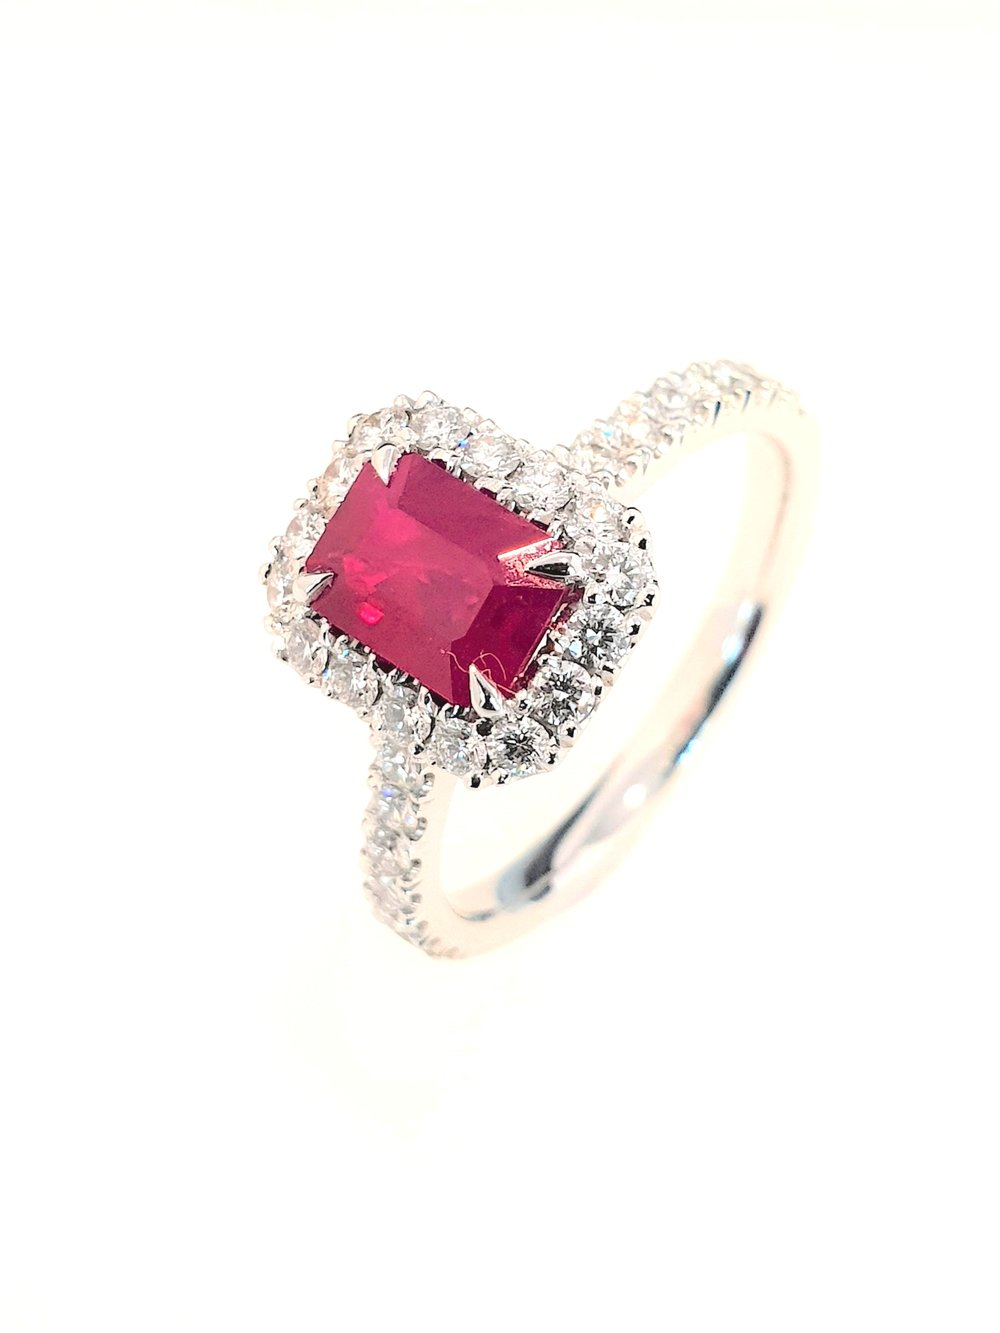 Platinum Ruby(1.04ct) & Diamond Ring  Diamond: .54ct, G, Si1  Stock Code: N8951  £5300